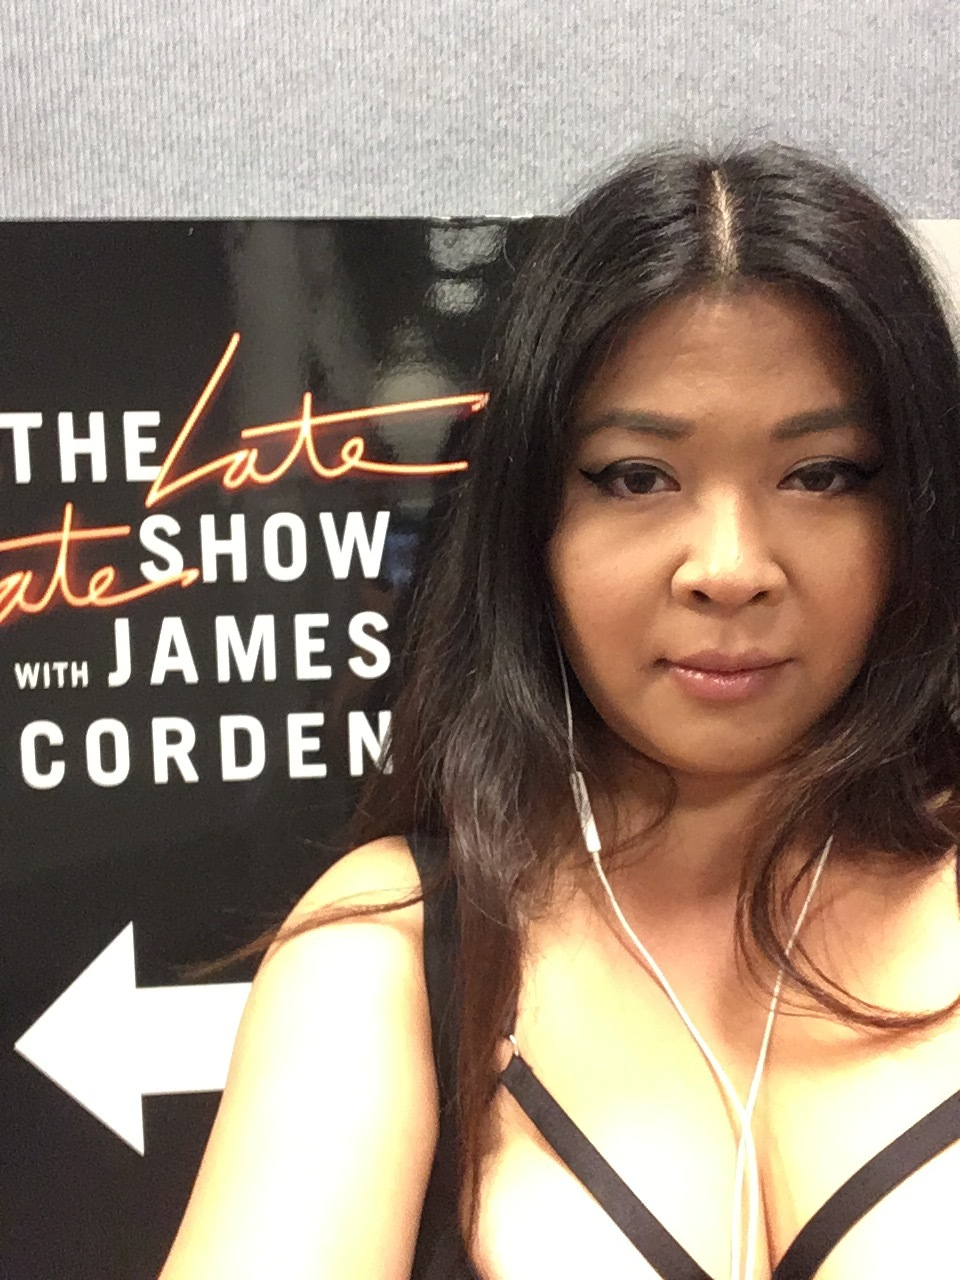 Backstage at Late Late Show with James Corden!